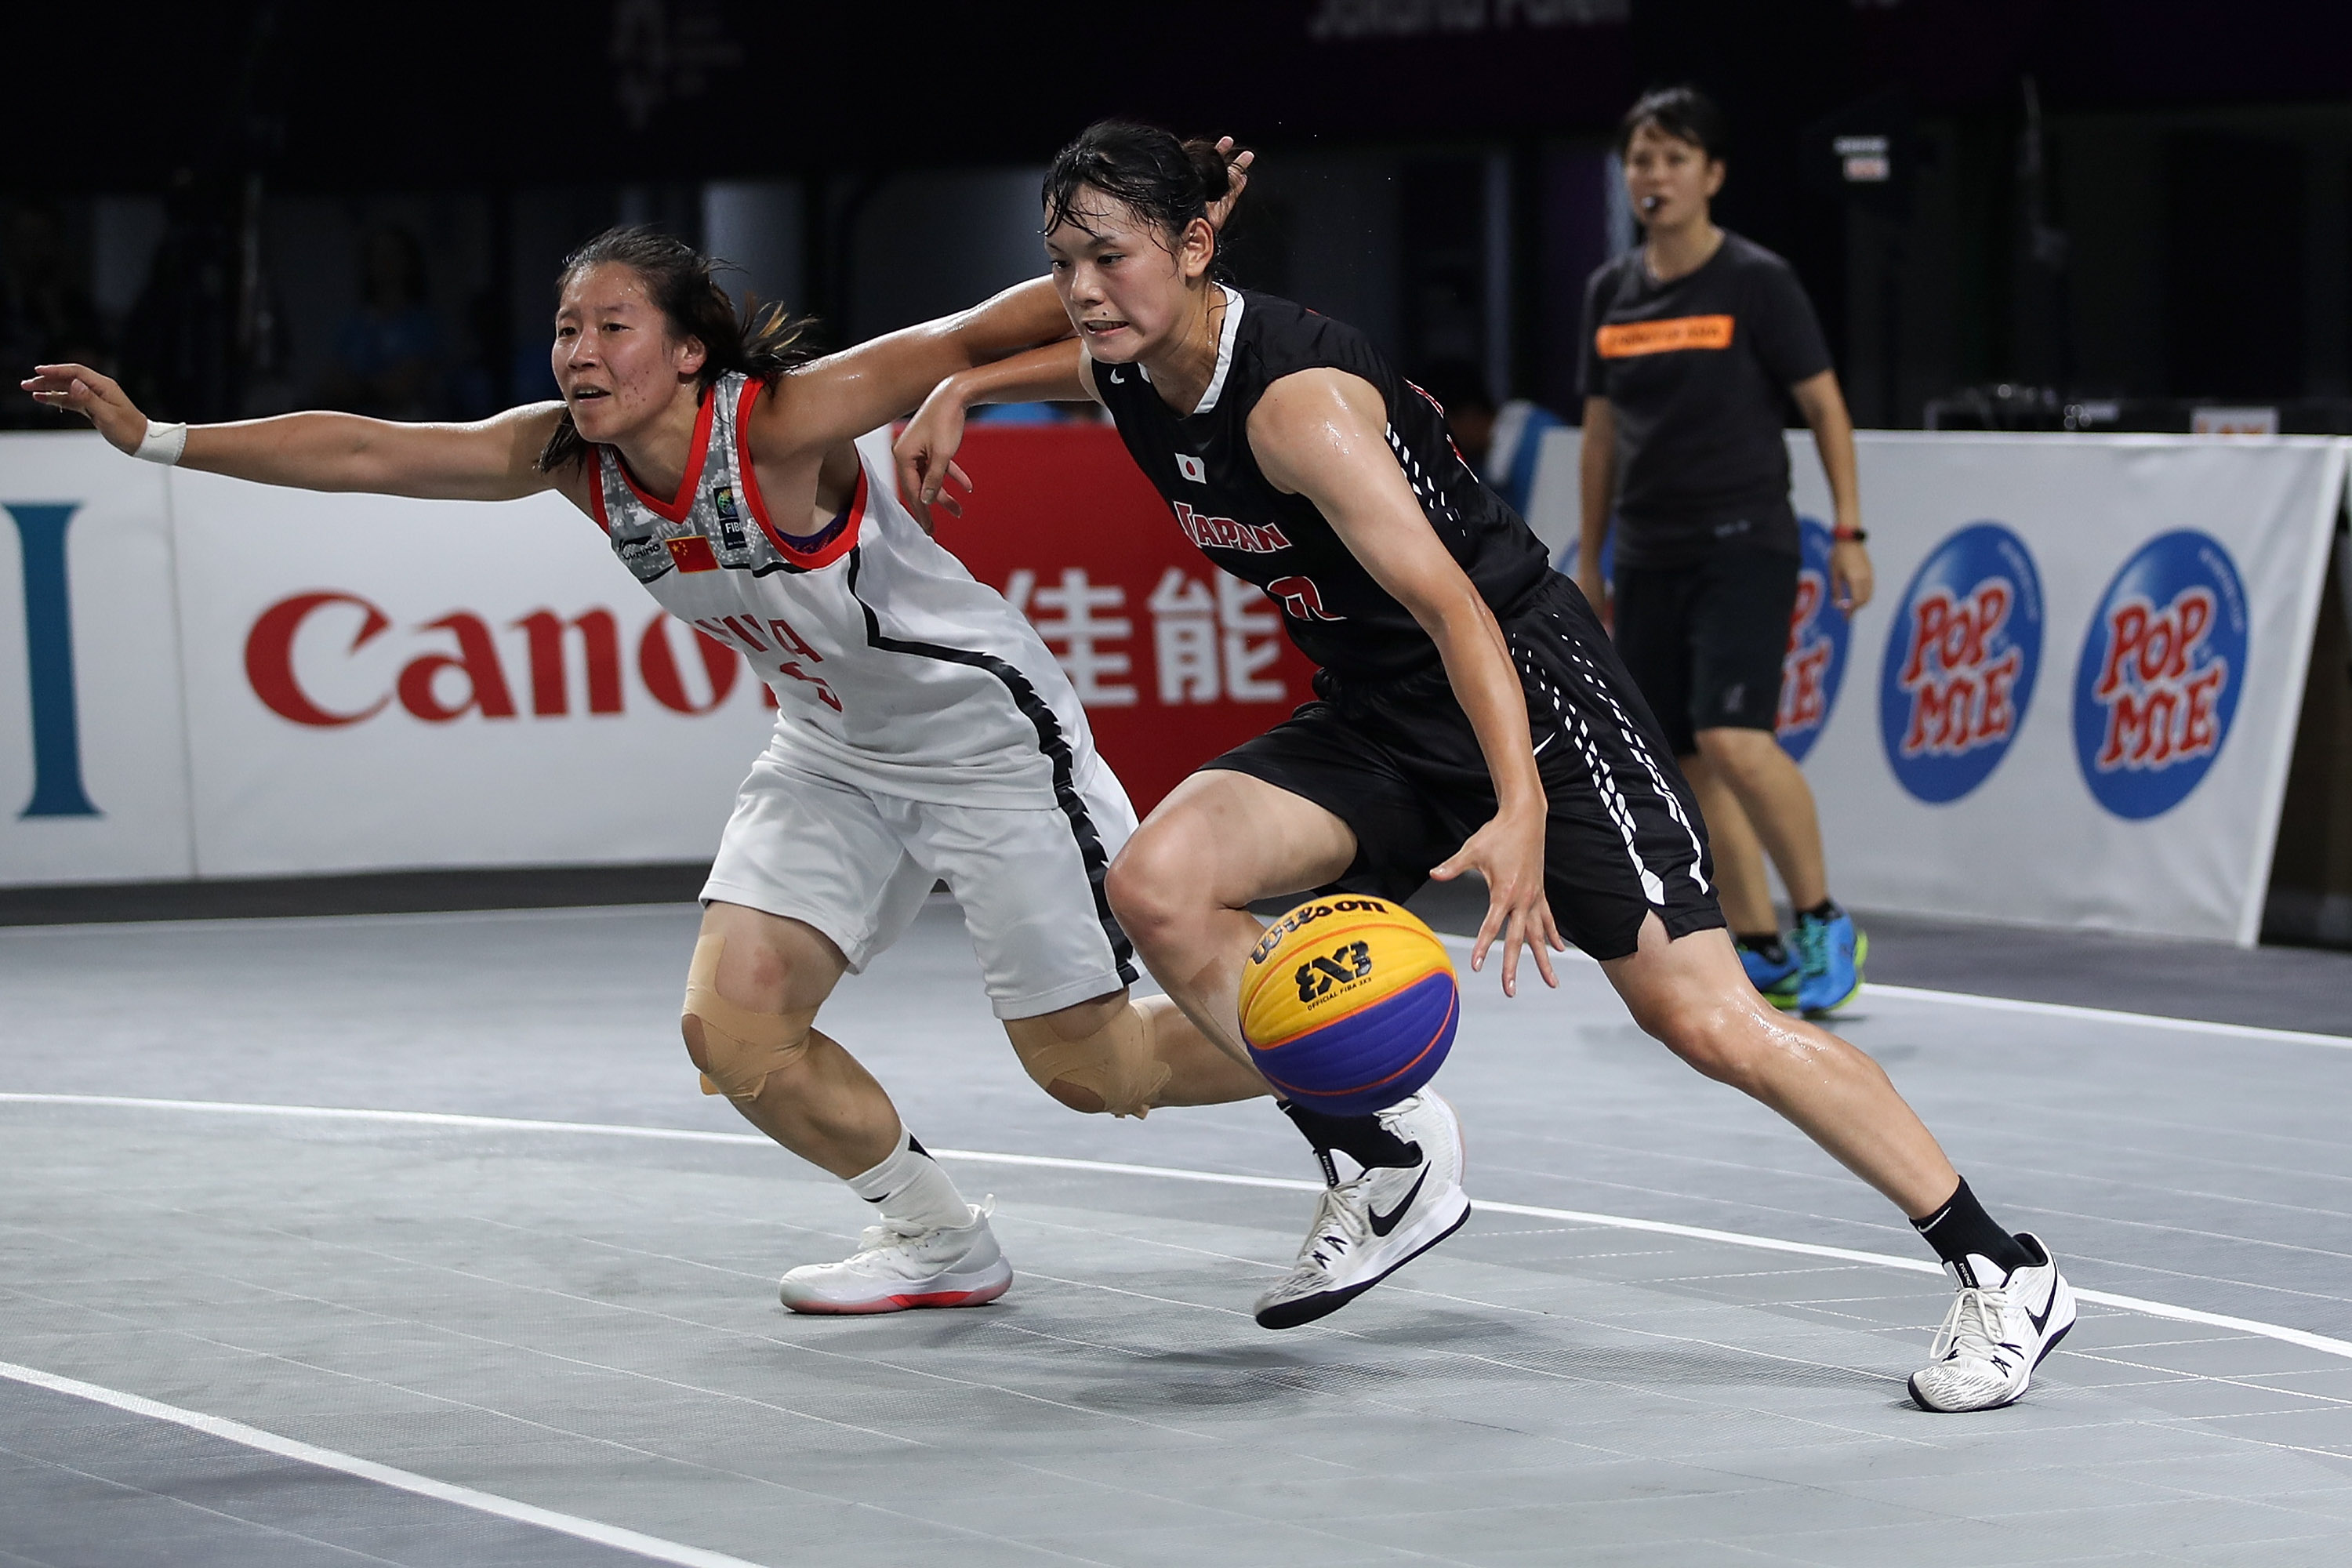 Li Yingyun of China and Okuyama Ririka of Japan in action during Women's Basketball 3X3 Final between China and Japan at the Asian Games on August 26, 2018 in Jakarta, Indonesia.